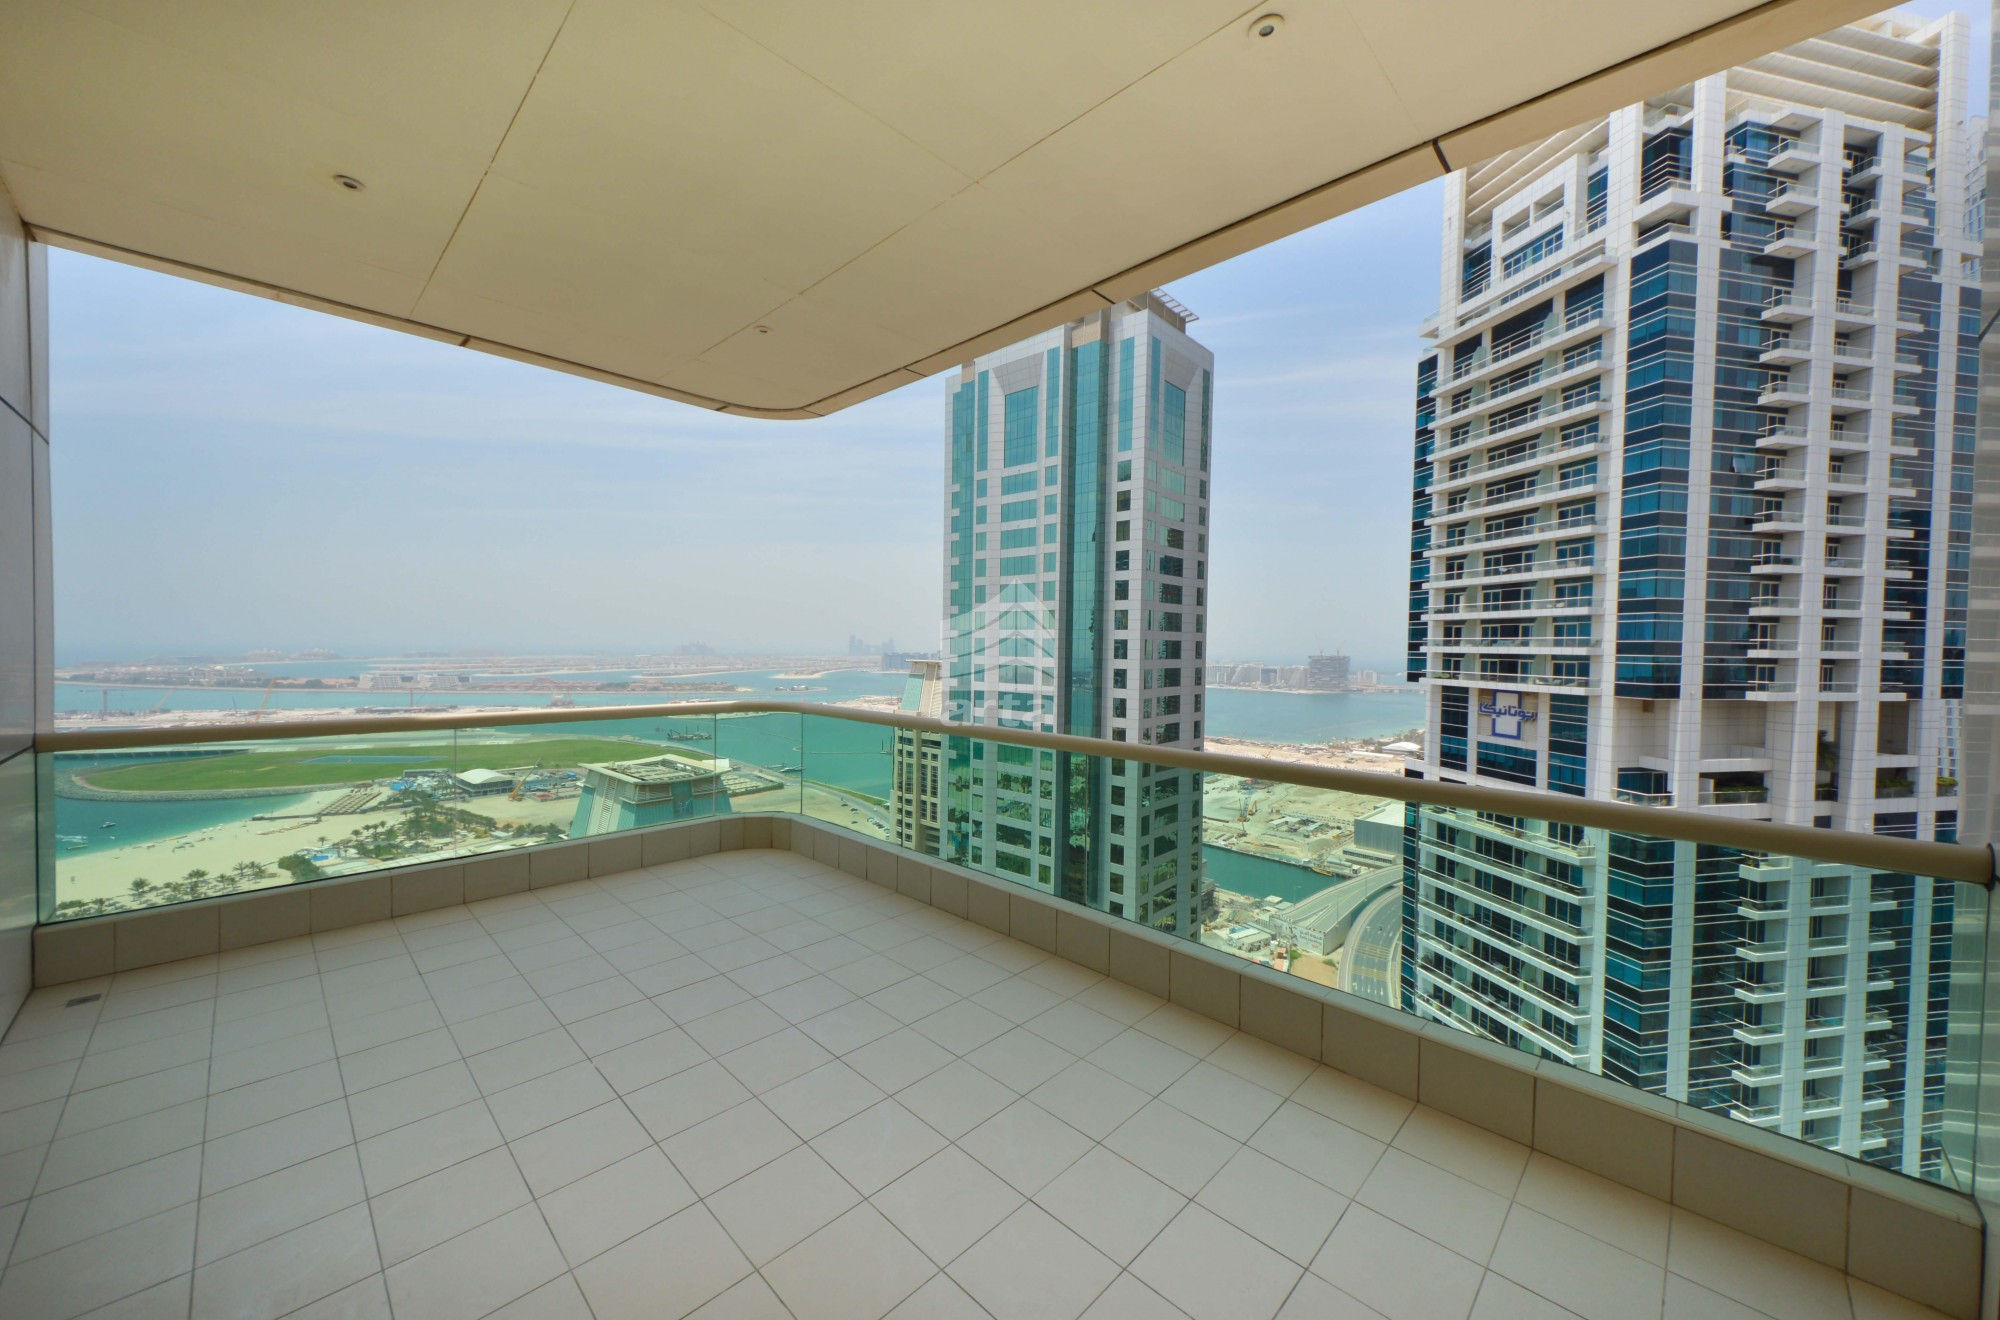 Sea View Inclusive of Cooling Chargers| Sauna & Spa.